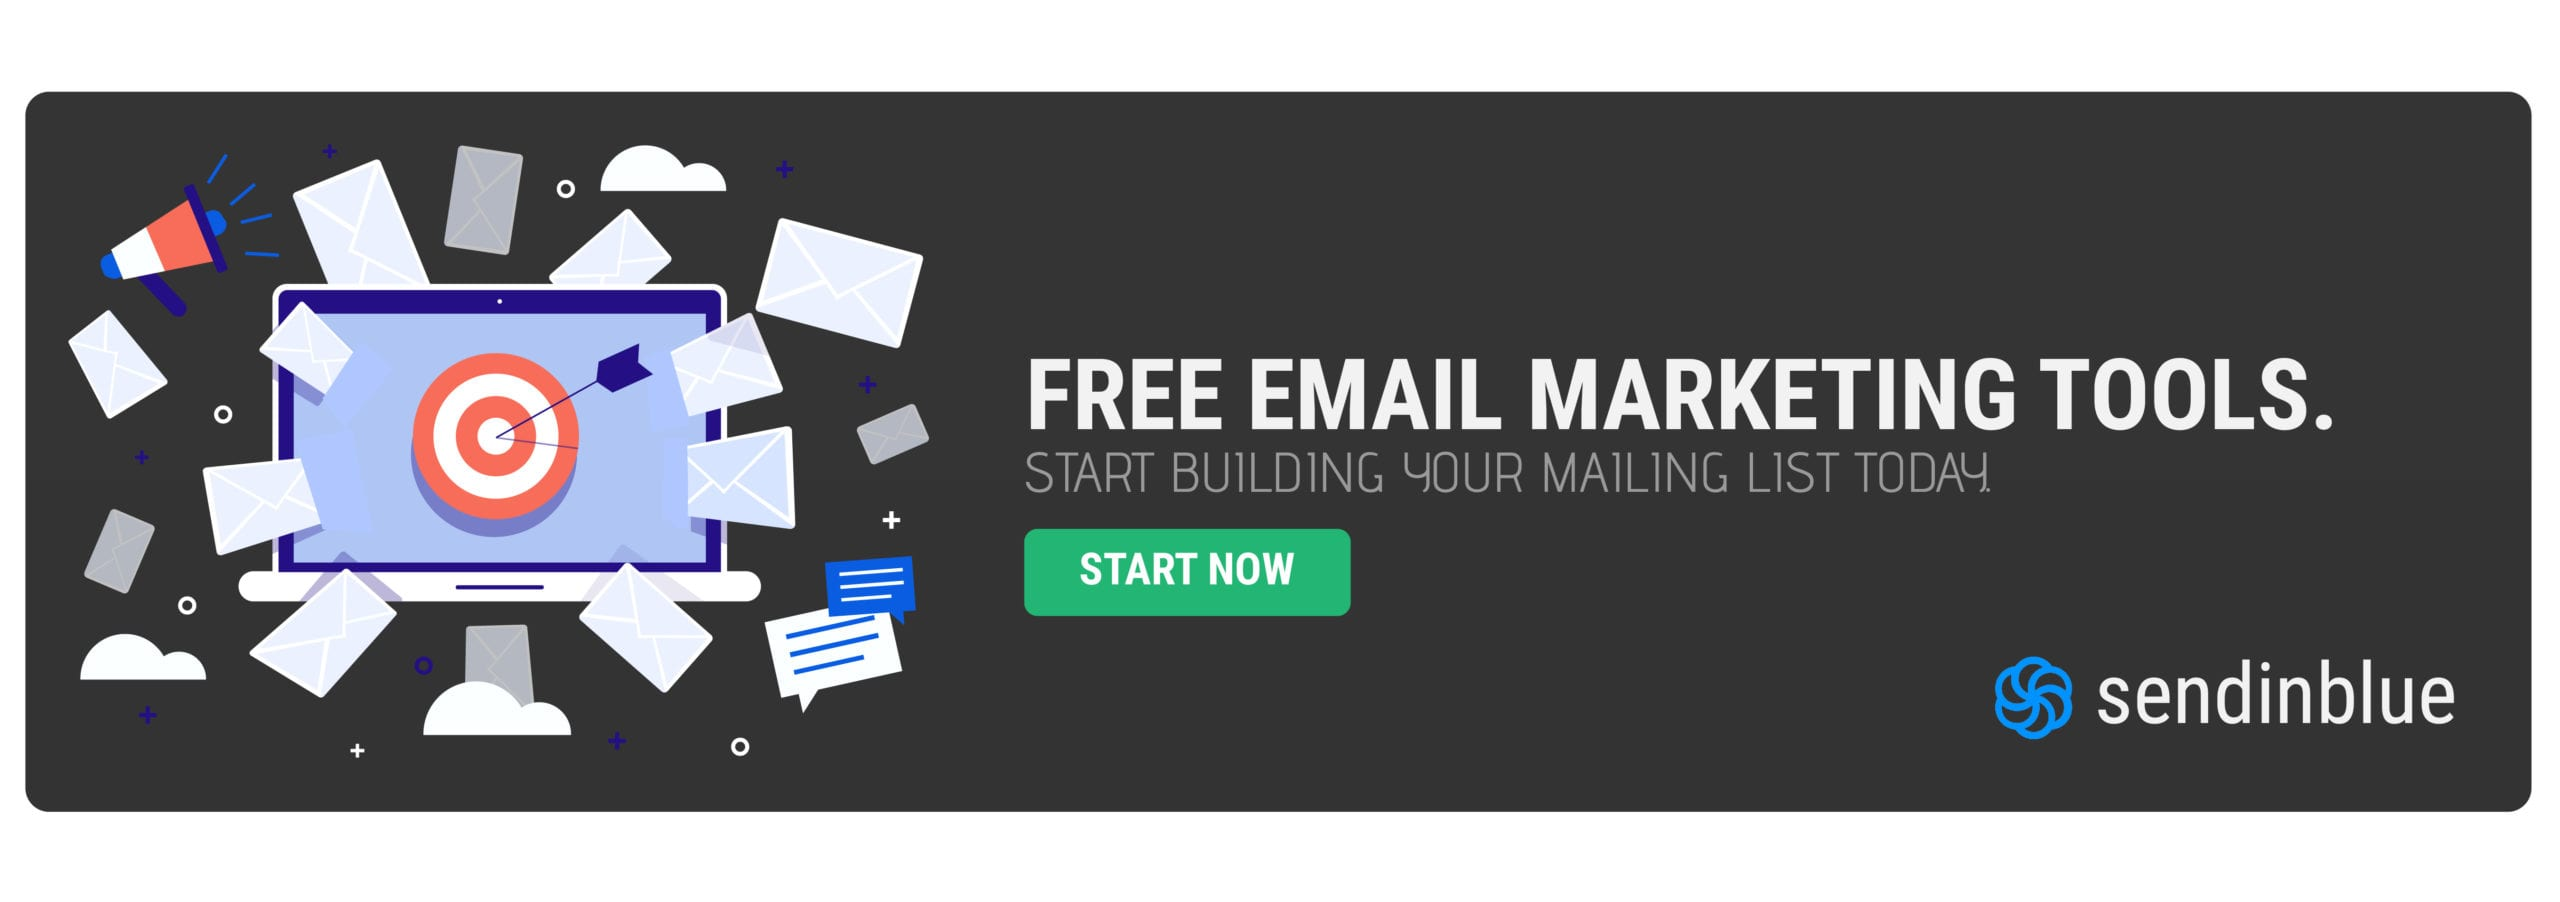 Free Email Marketing Tools - Start building your list today.